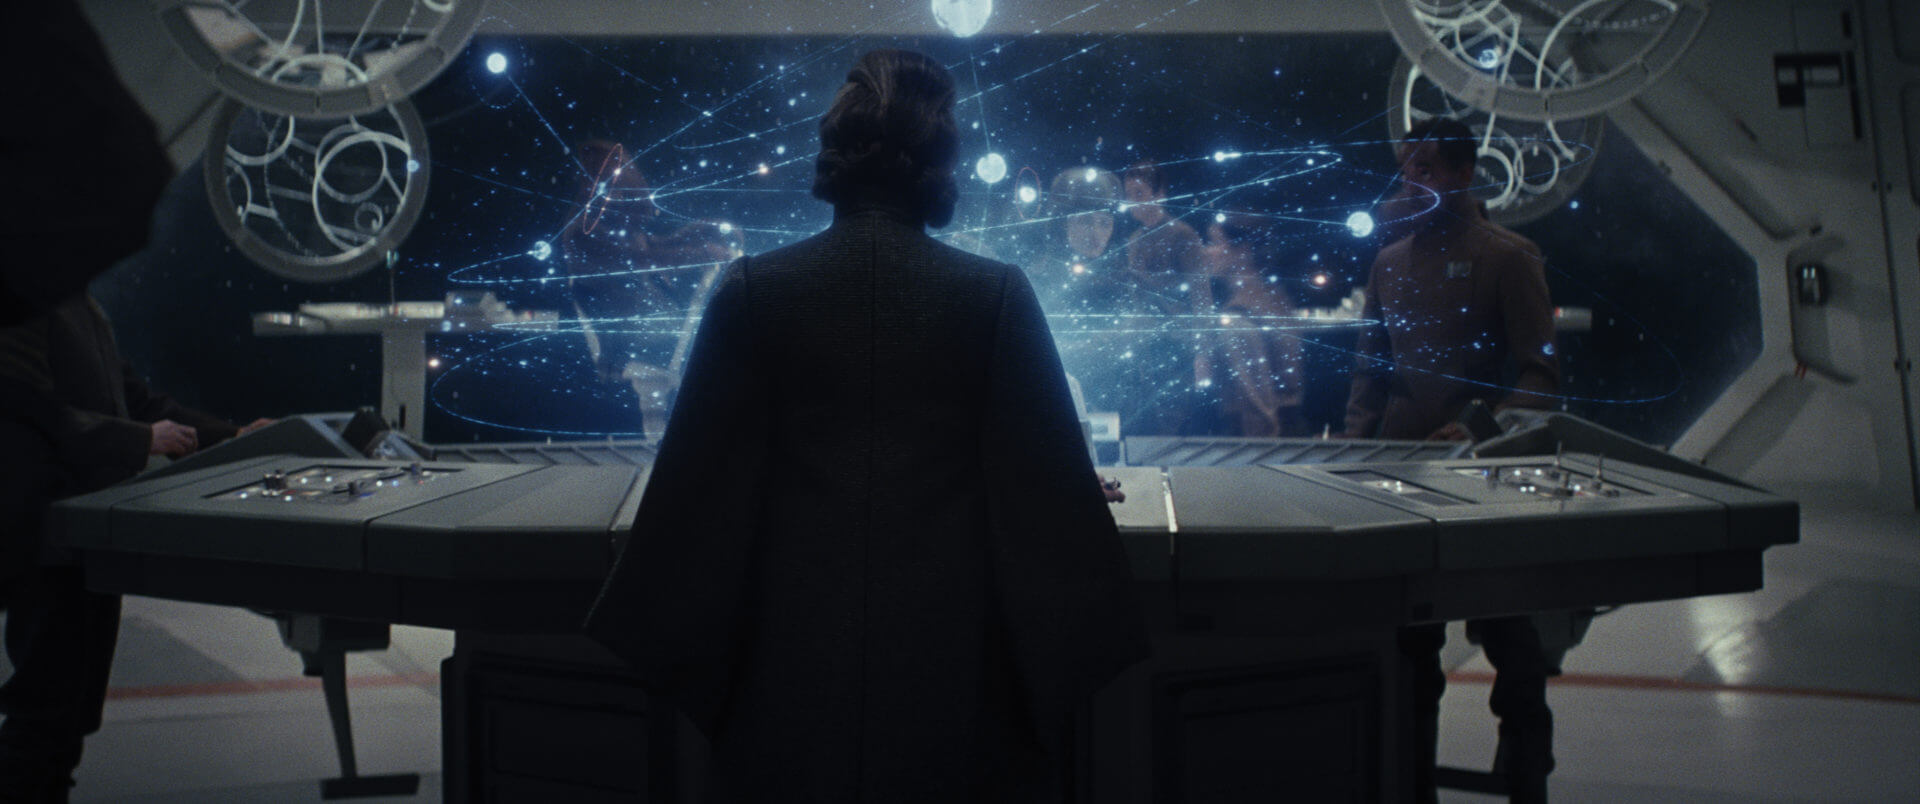 ANALYSIS Shot For Shot With Star Wars The Last Jedi Trailer - The last of us lake resort map